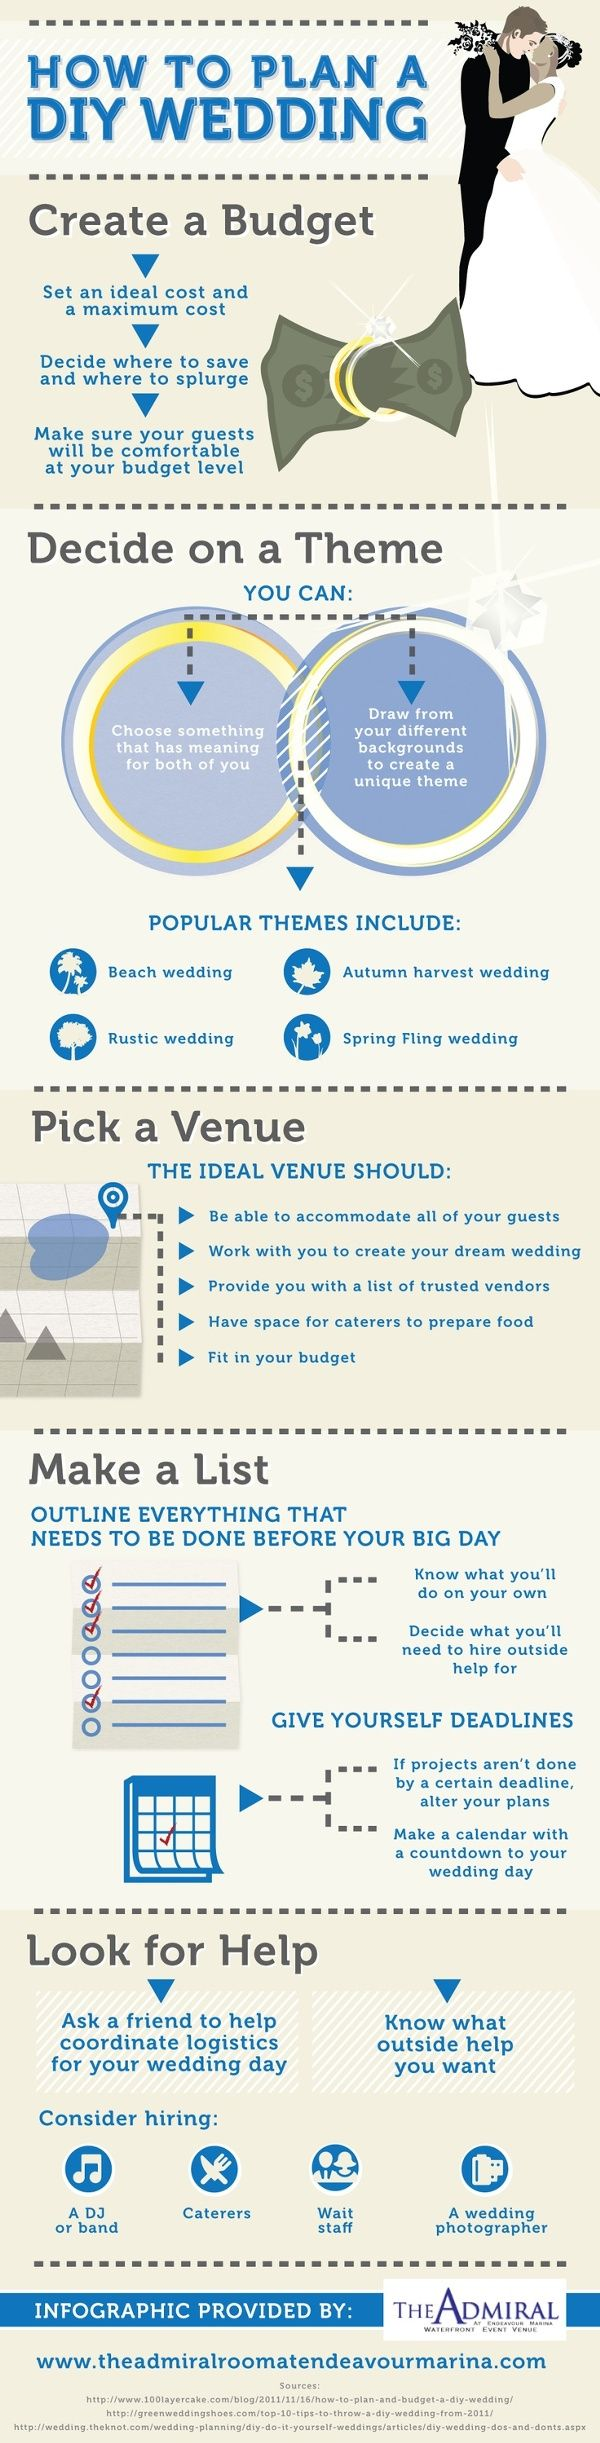 Plan a DIY wedding to save money and let your creativity flow!